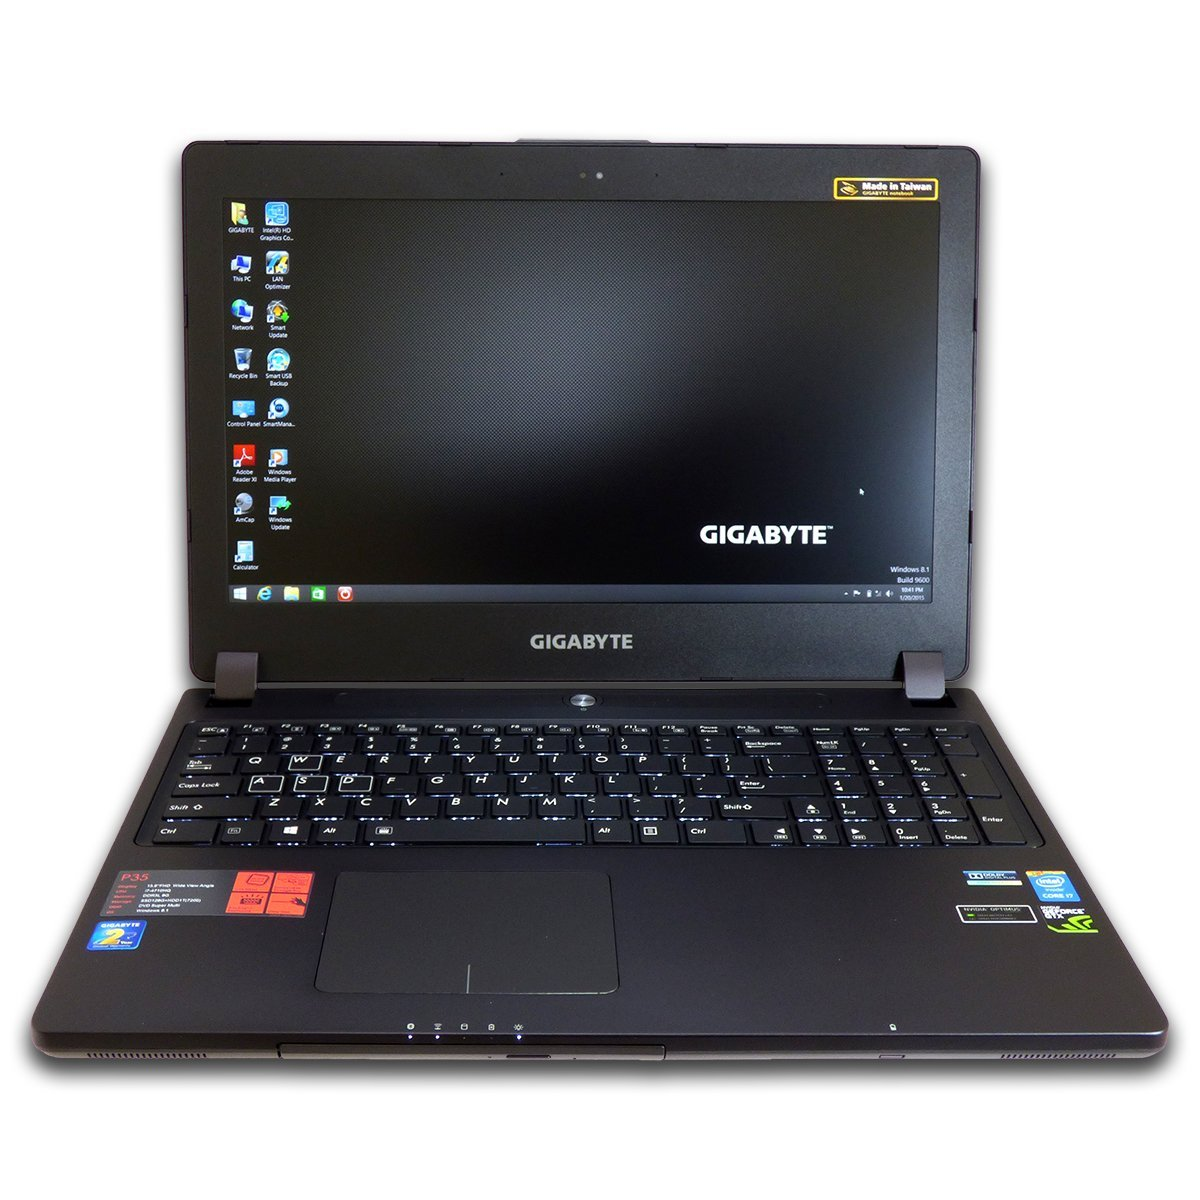 Gigabyte P35Xv3 15.6 inch FHD Gaming Laptop